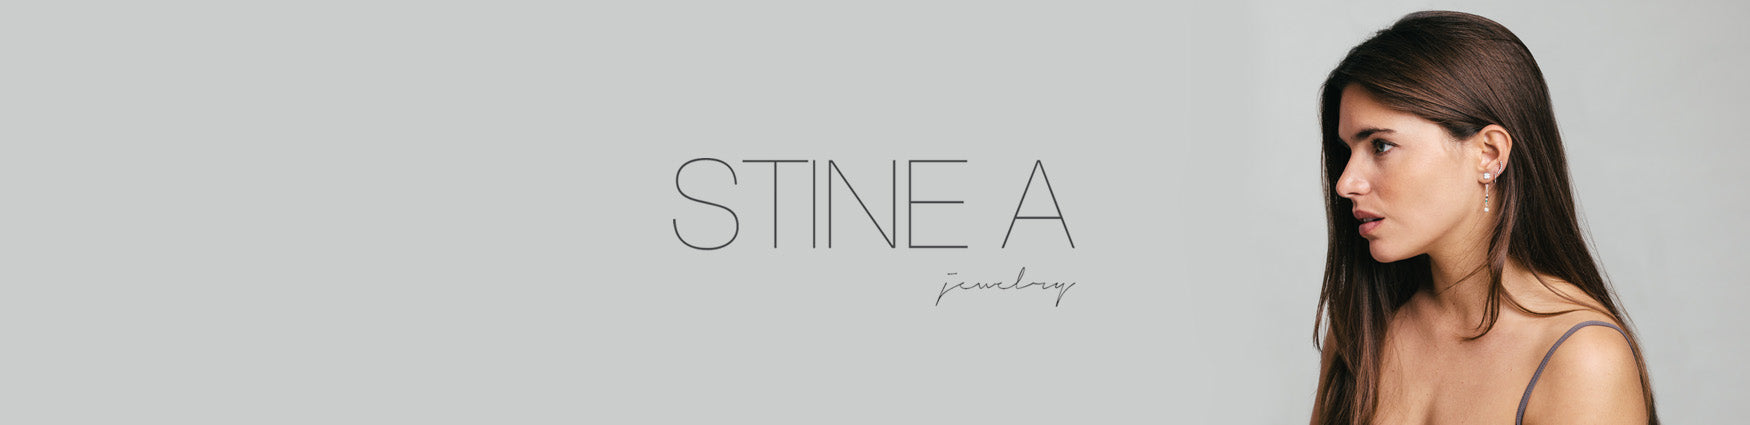 Shop Stine A Jewellery from Roo's Beach UK